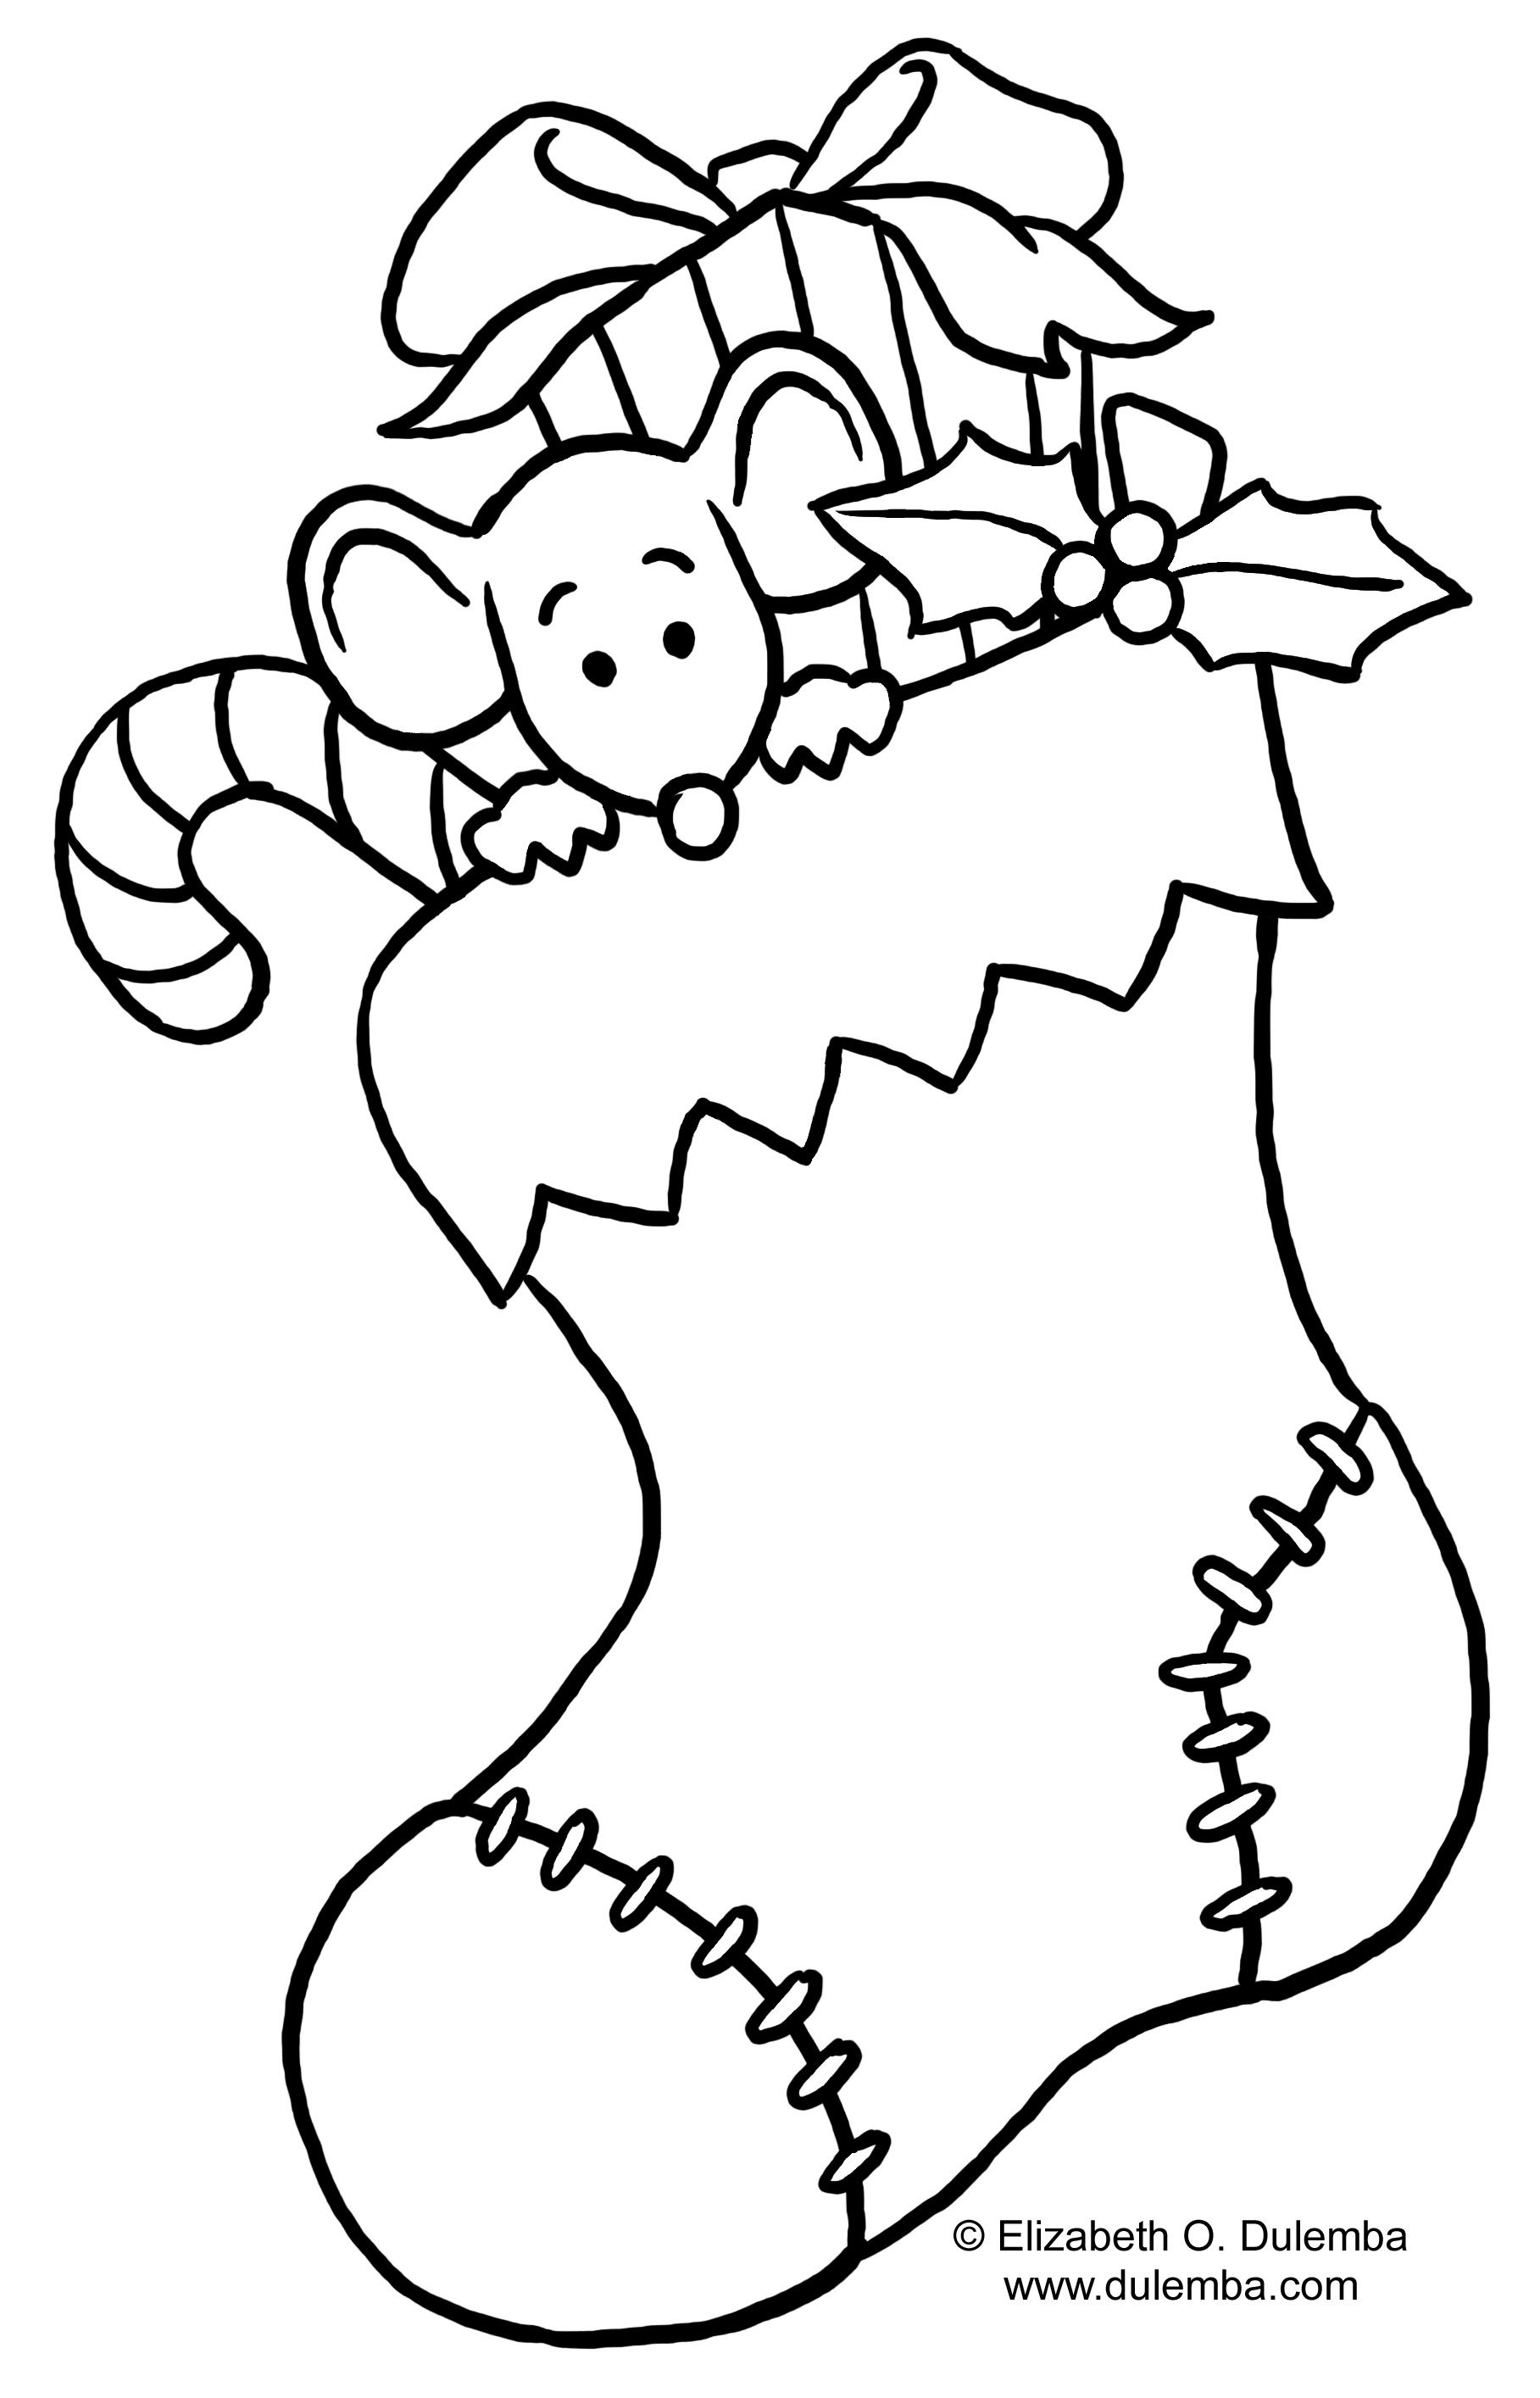 Free printable coloring pages about christmas - Christmas Decorations Colouring Pages